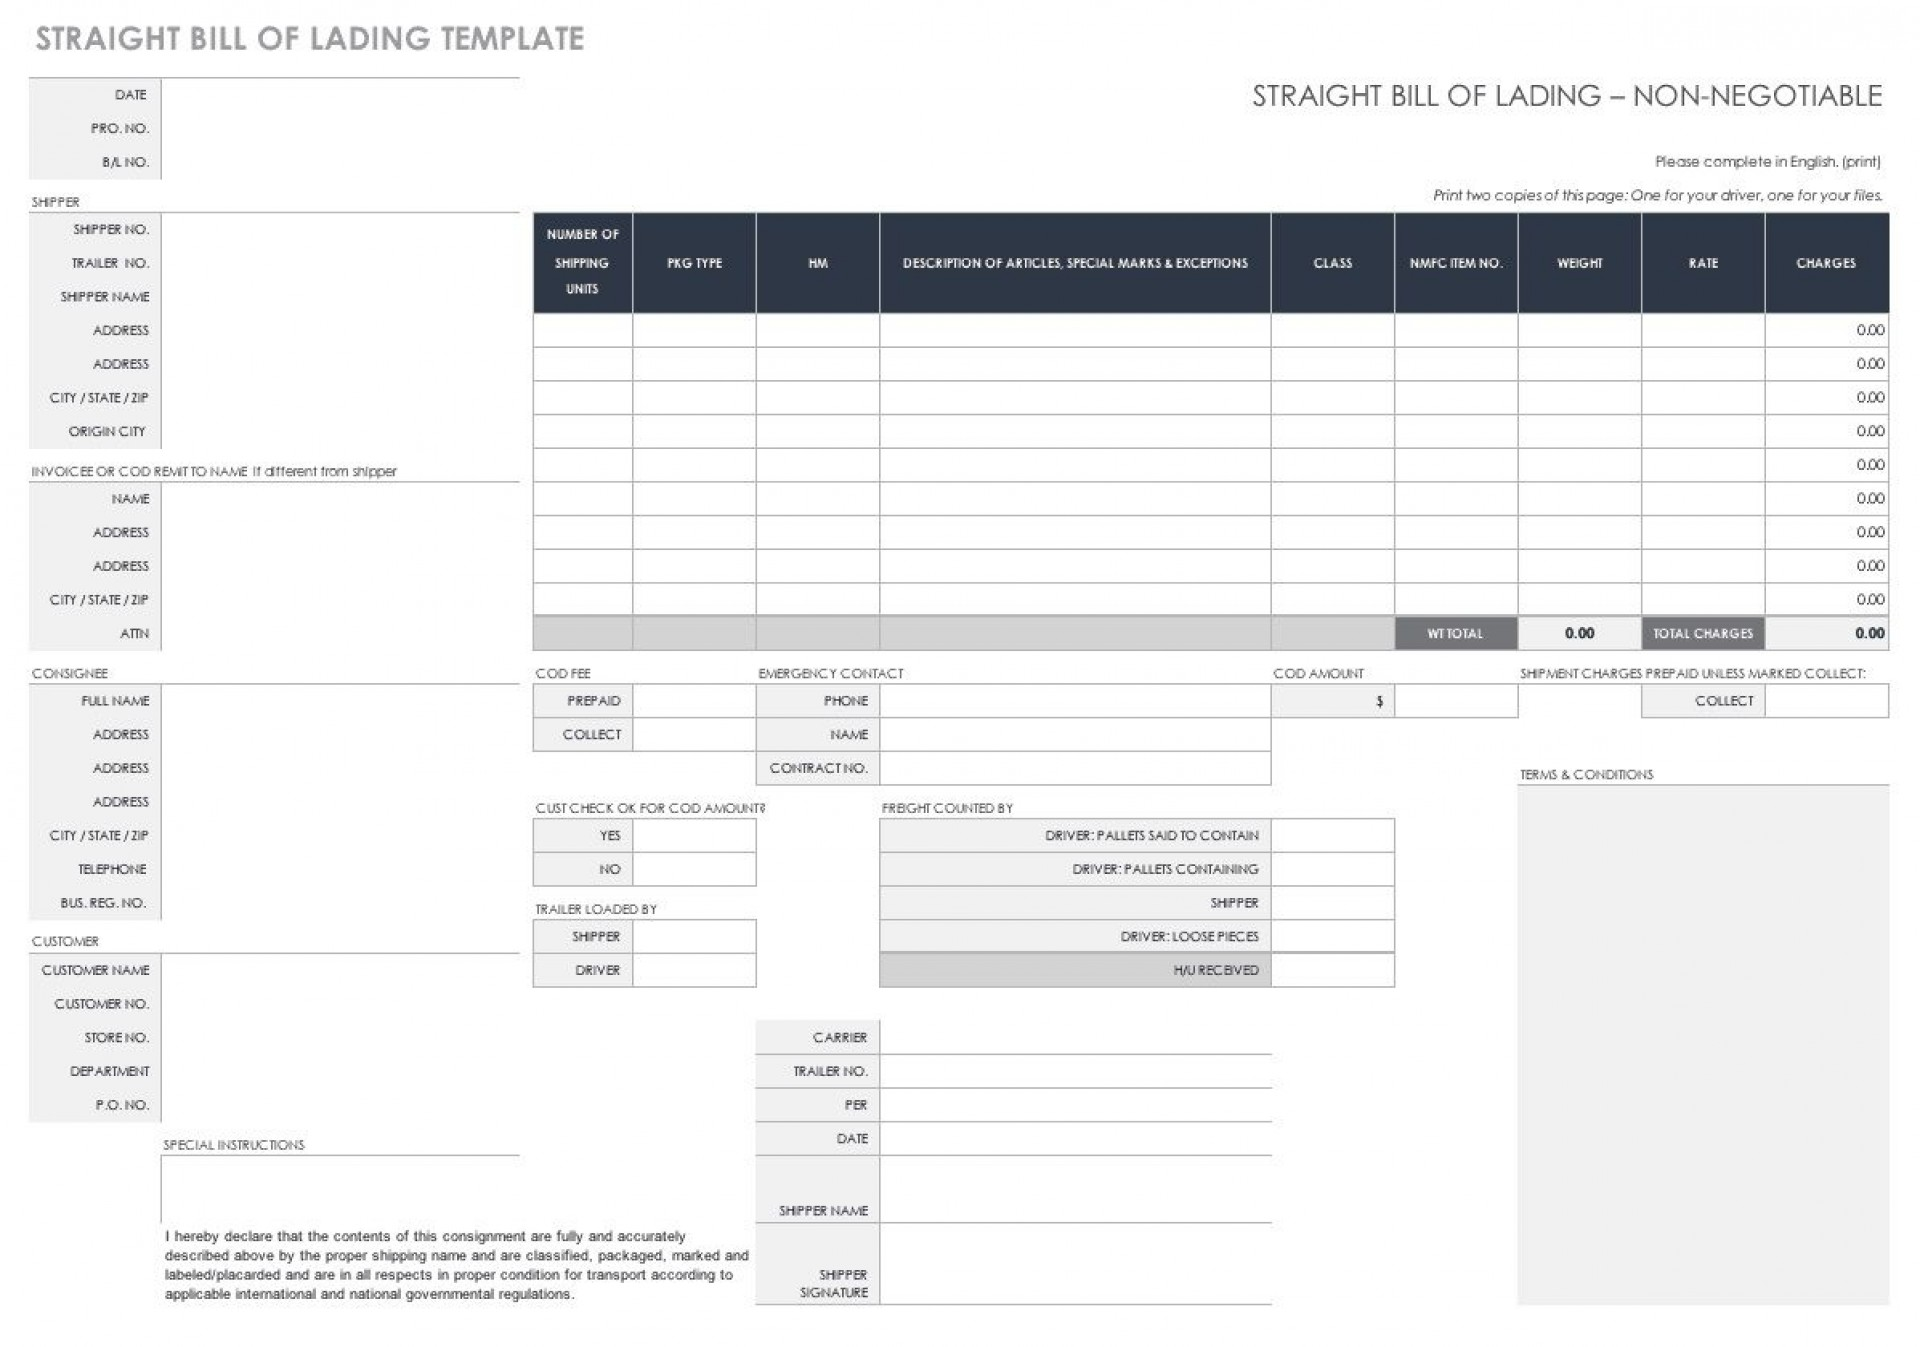 008 Frightening Free Bill Of Lading Template Concept  Download Pdf Form1920